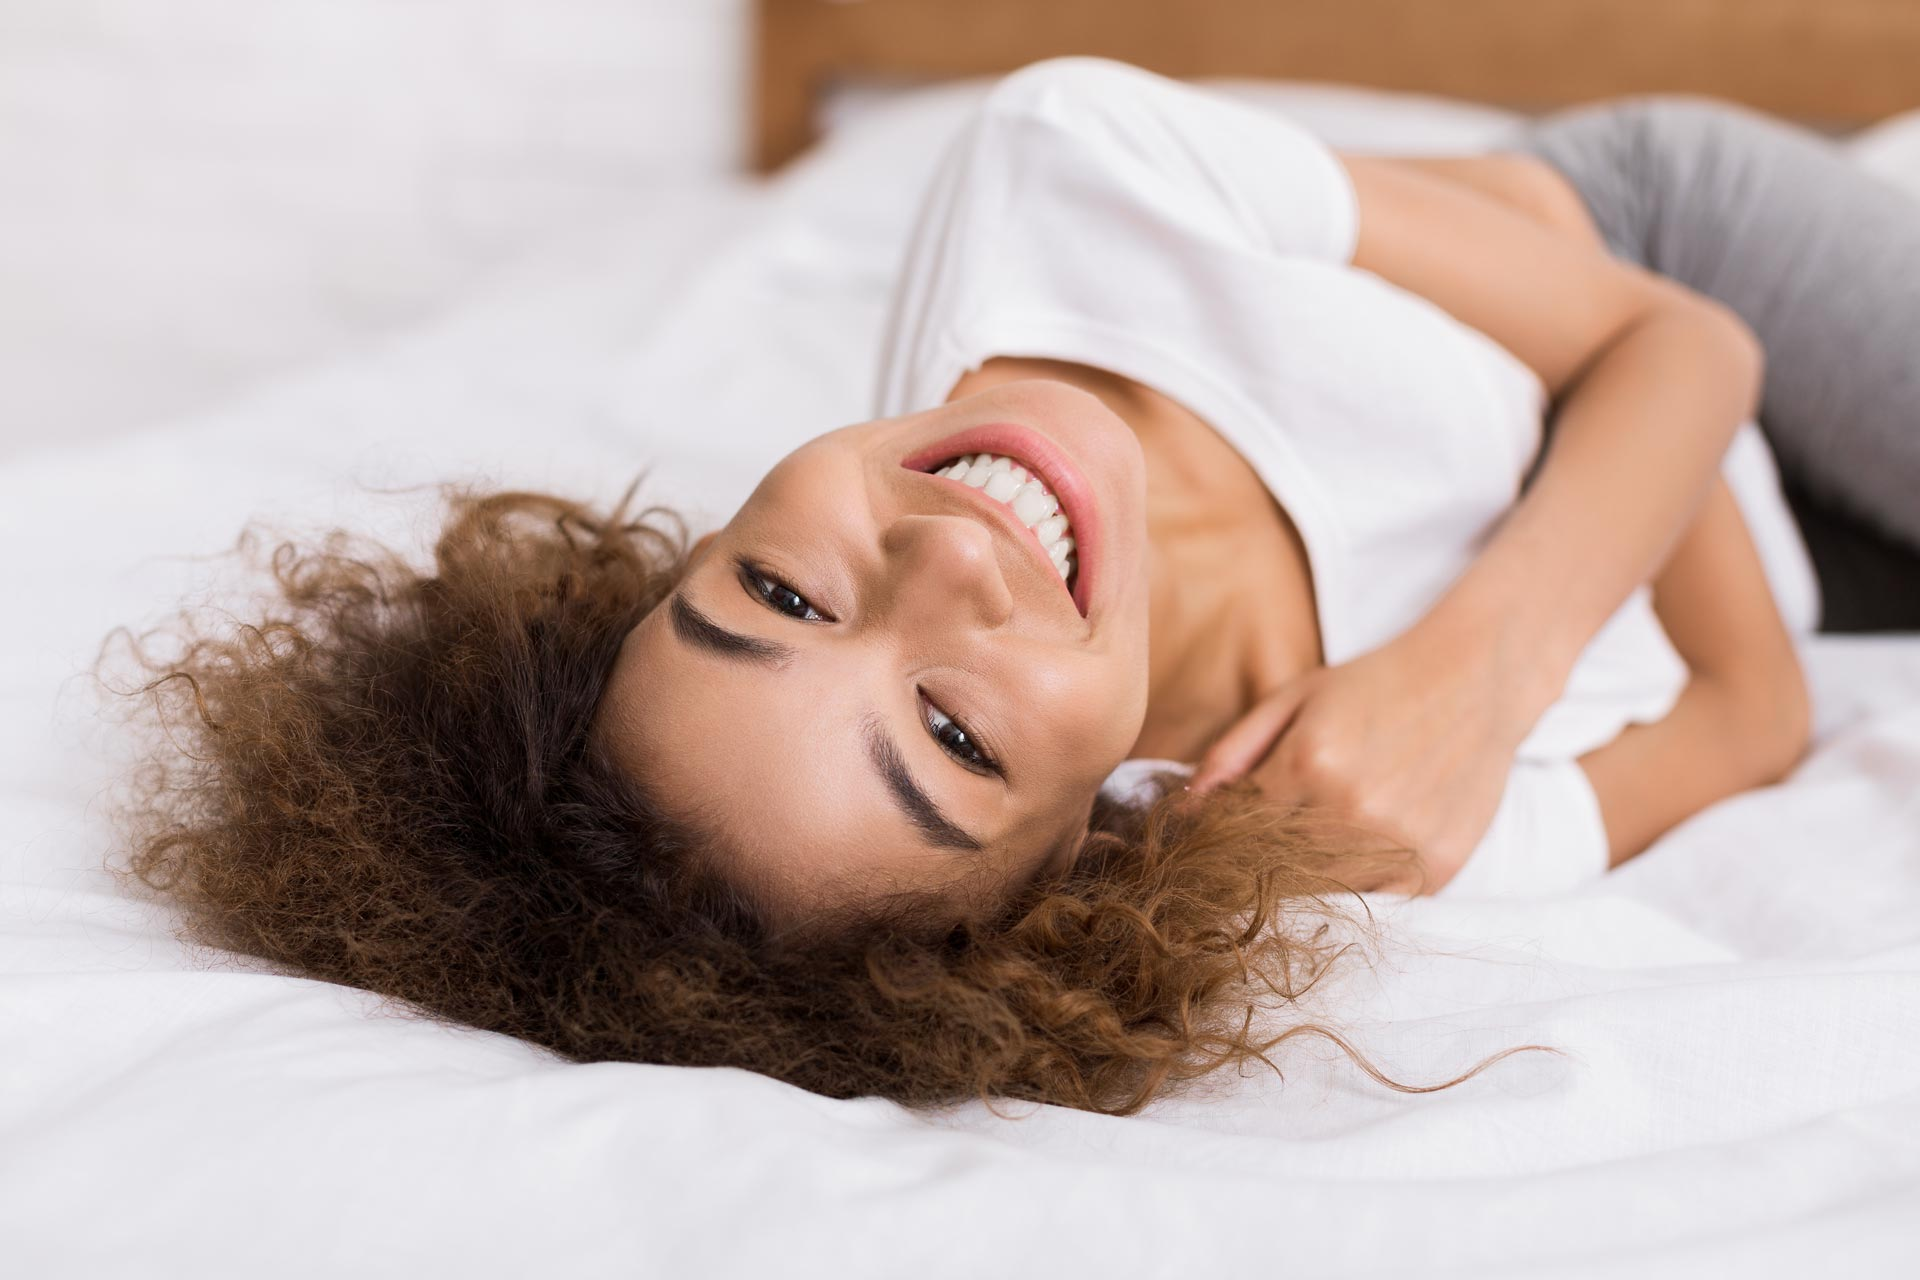 happy-woman-lying-on-bed-and-looking-at-camera-AG4TZW5.jpg